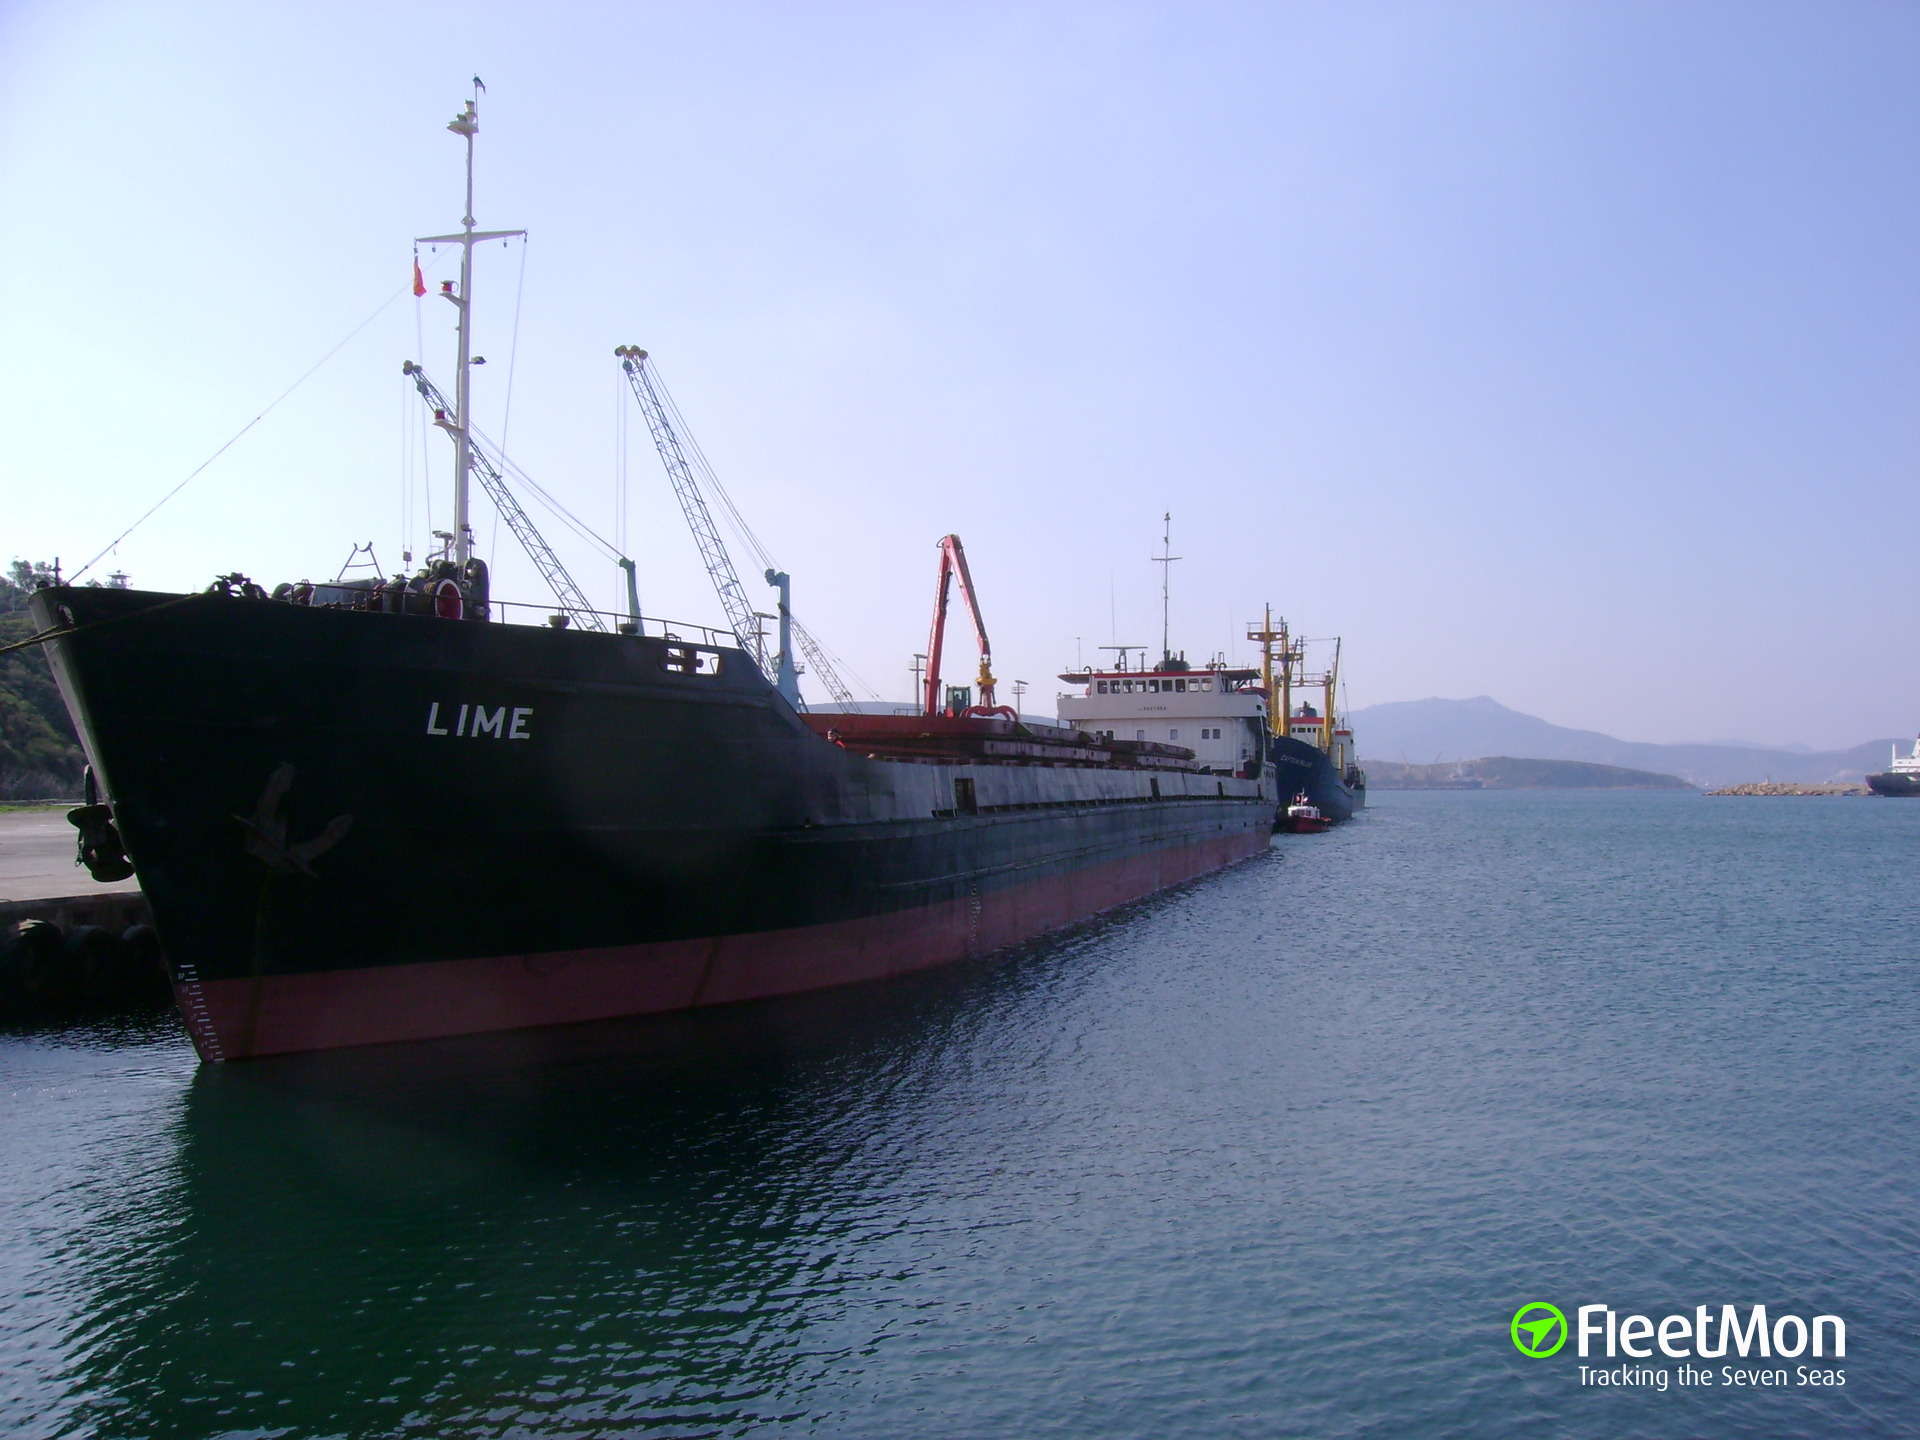 General cargo vessel Lime in double distress